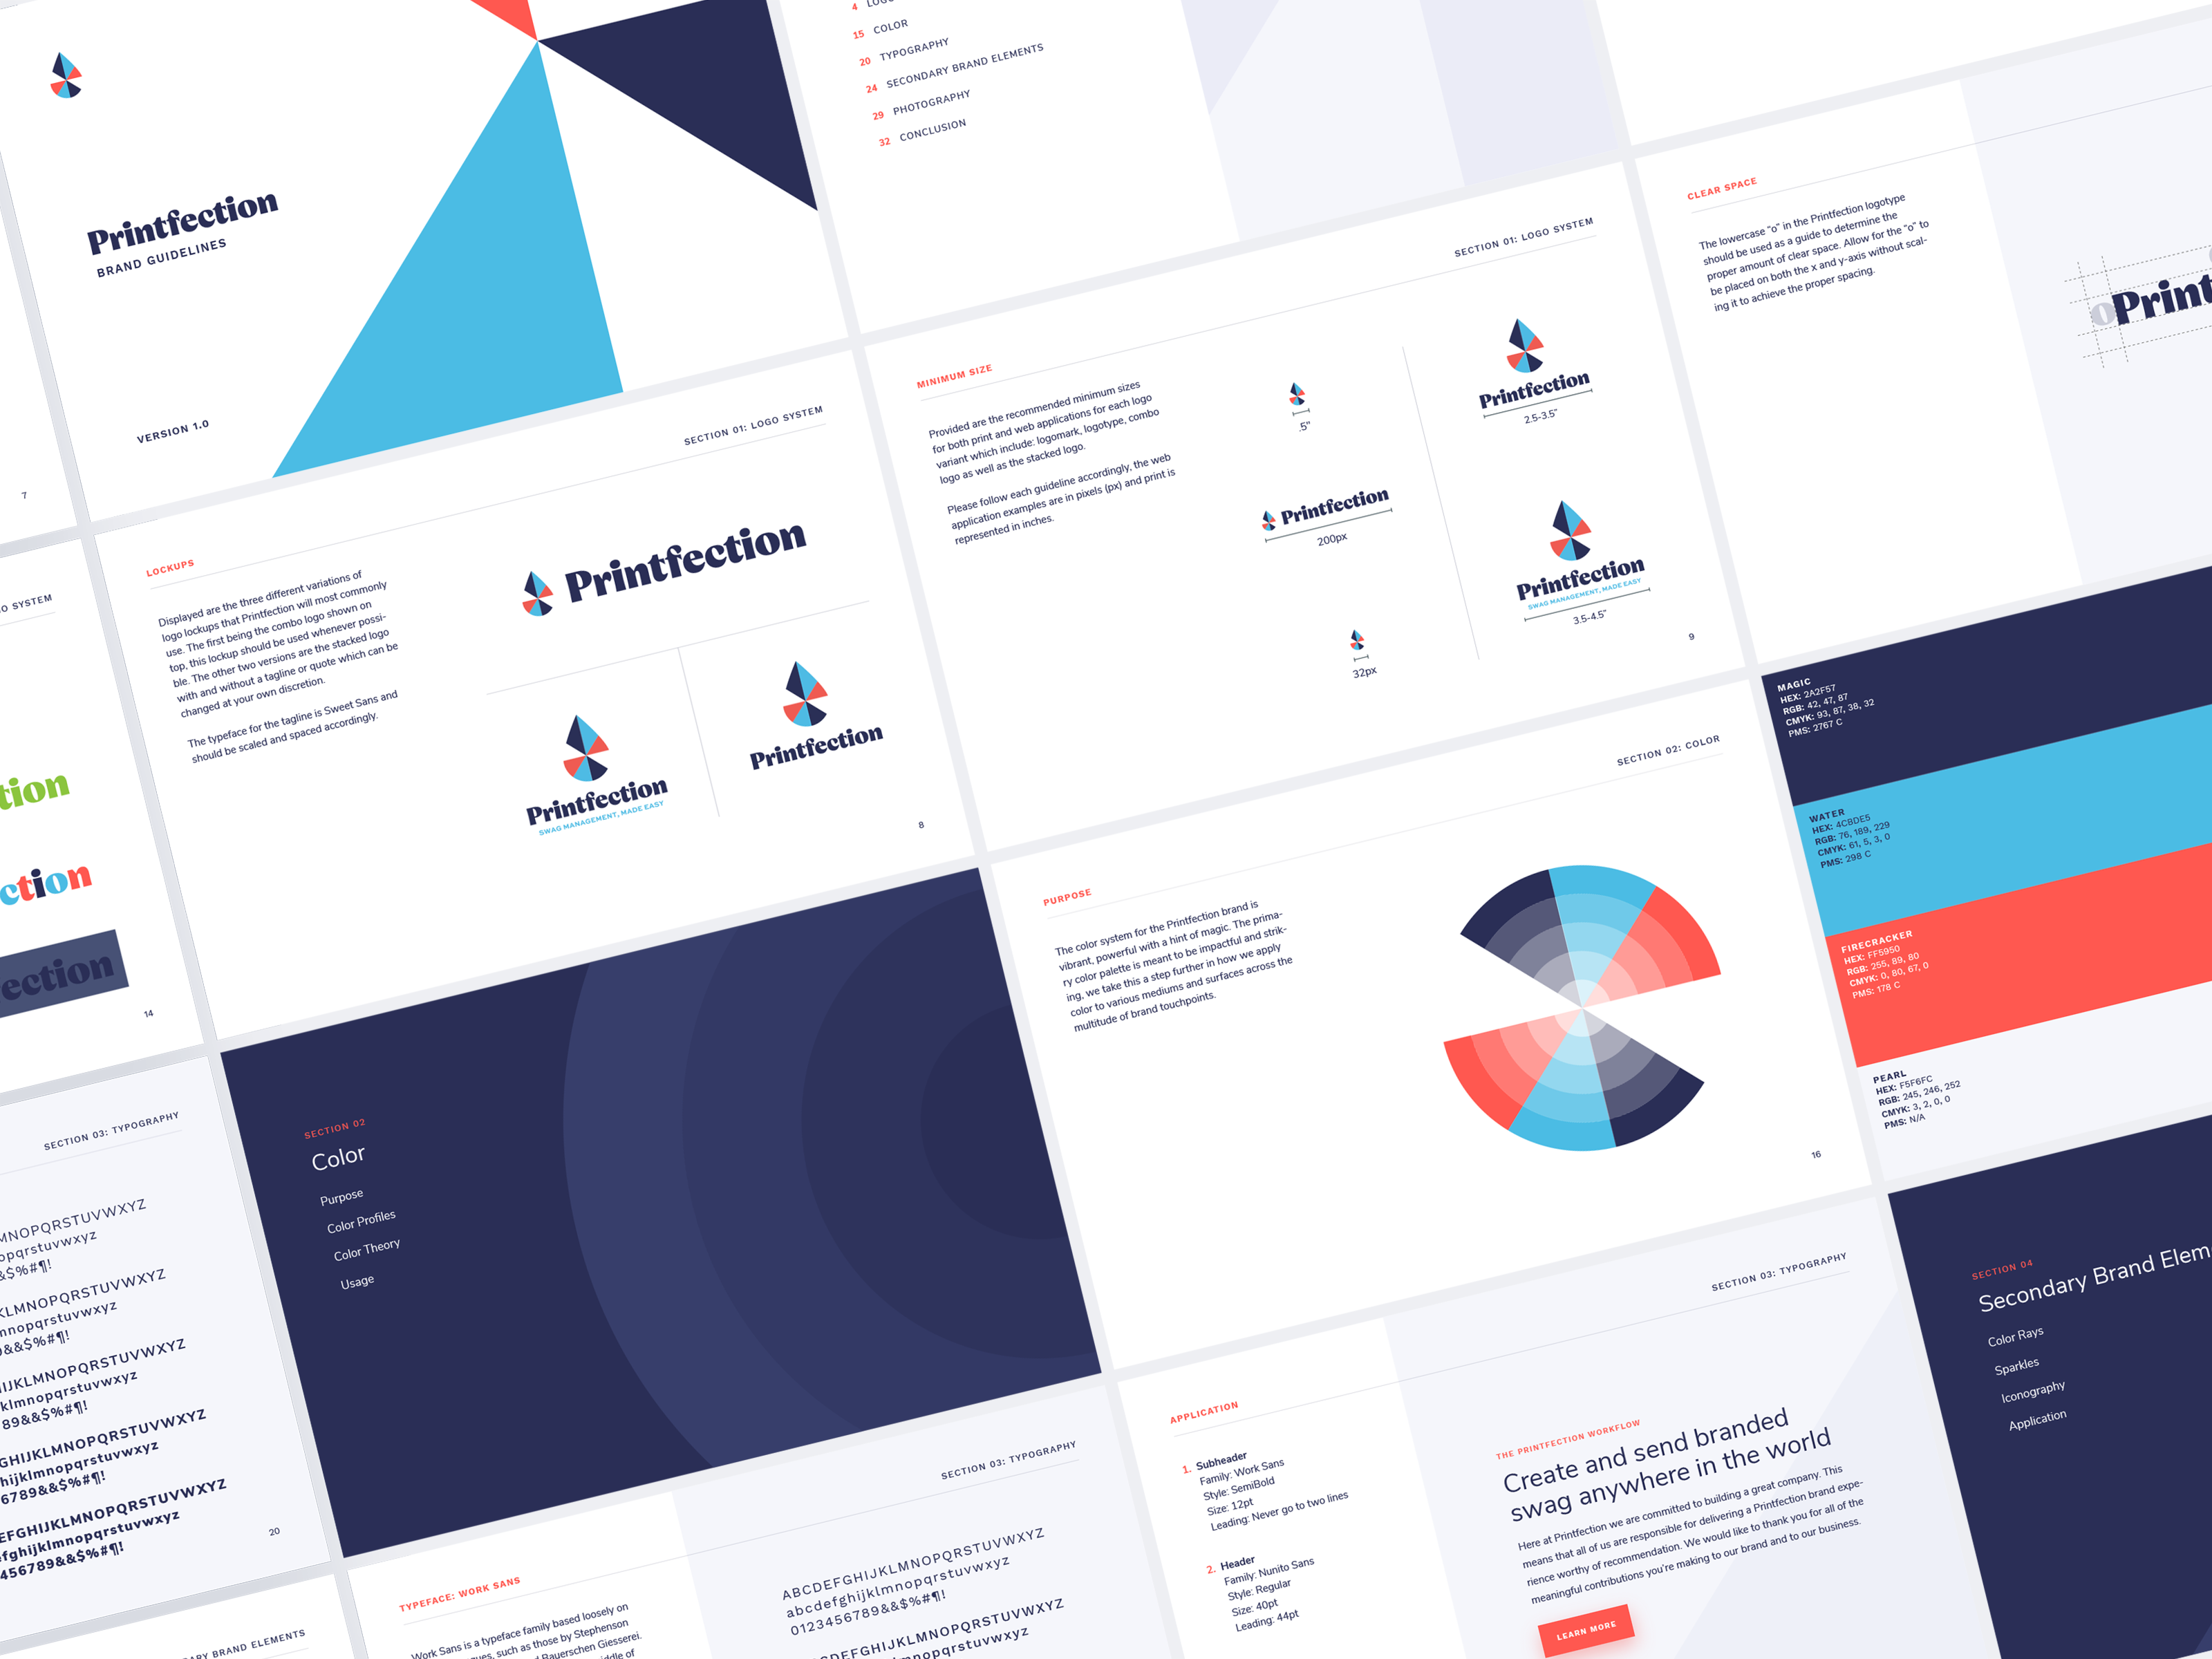 Printfection Brand Guidelines